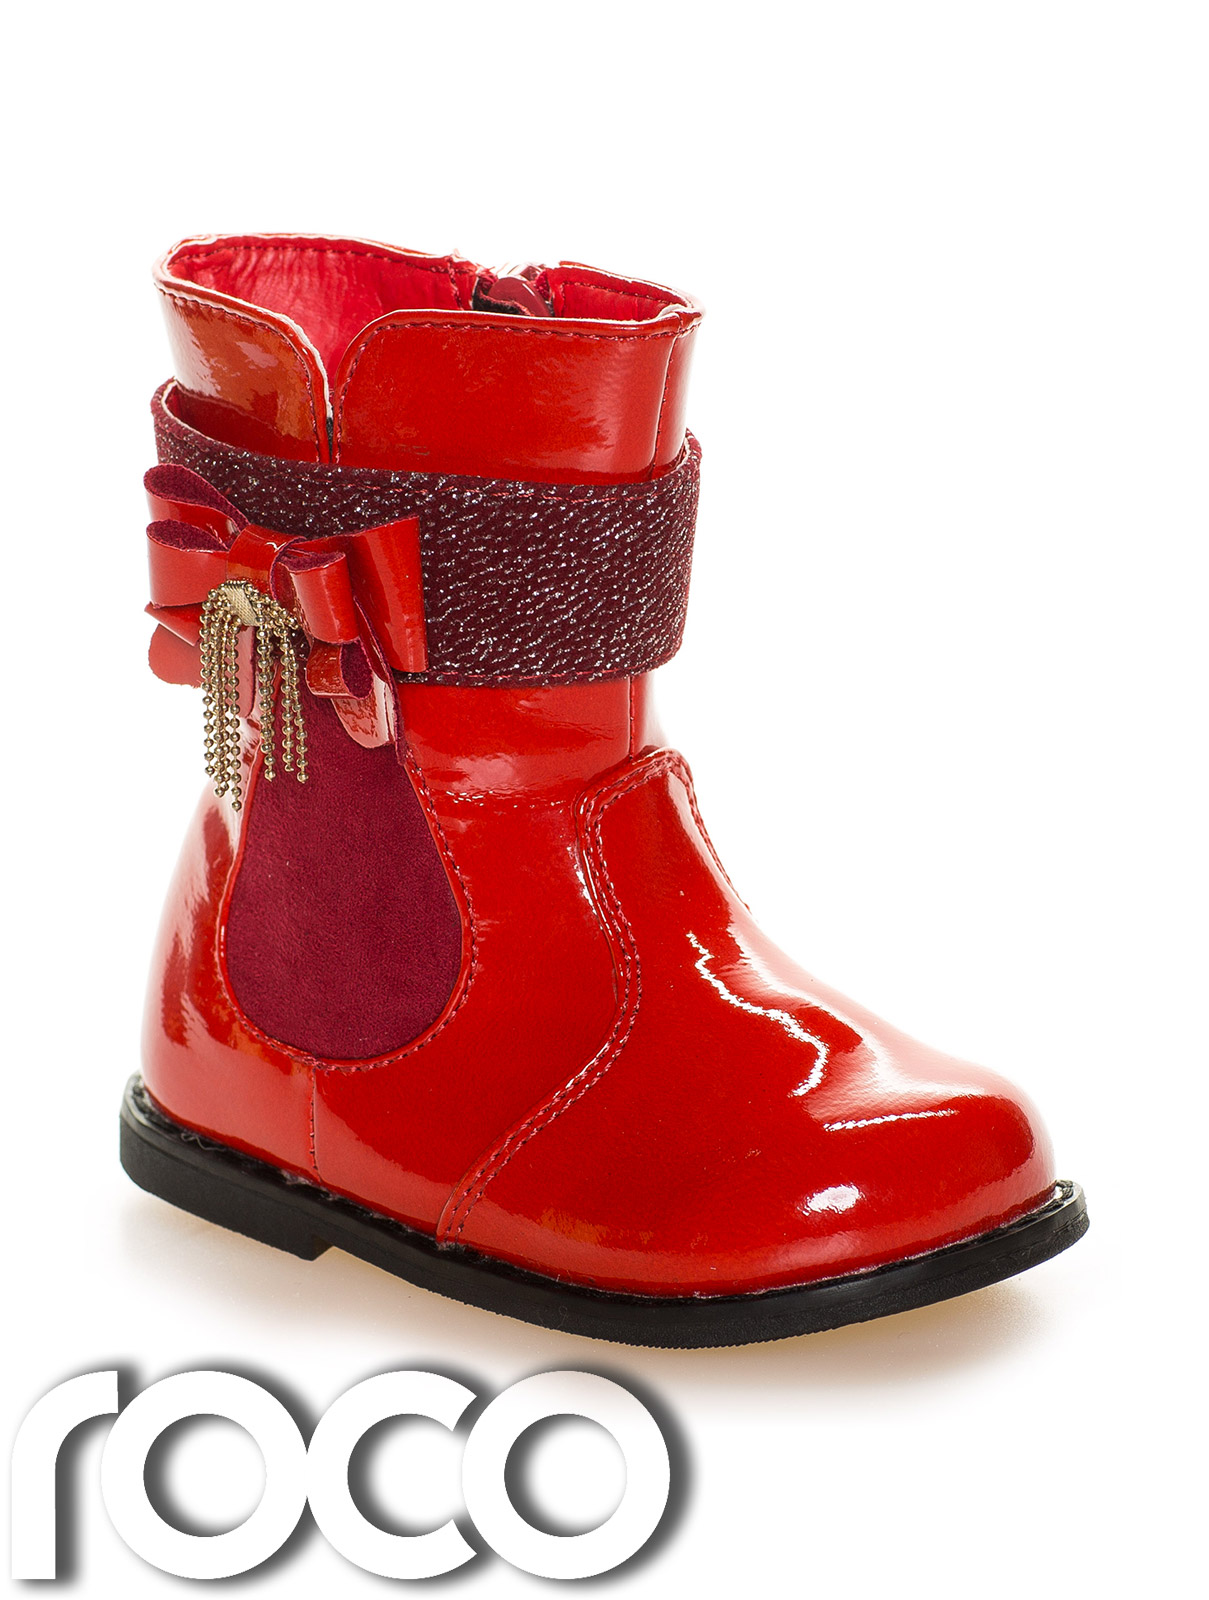 Creative DC Chalet 20 Shoes Boots Snow Winter BlackPinkWhite Women Youth